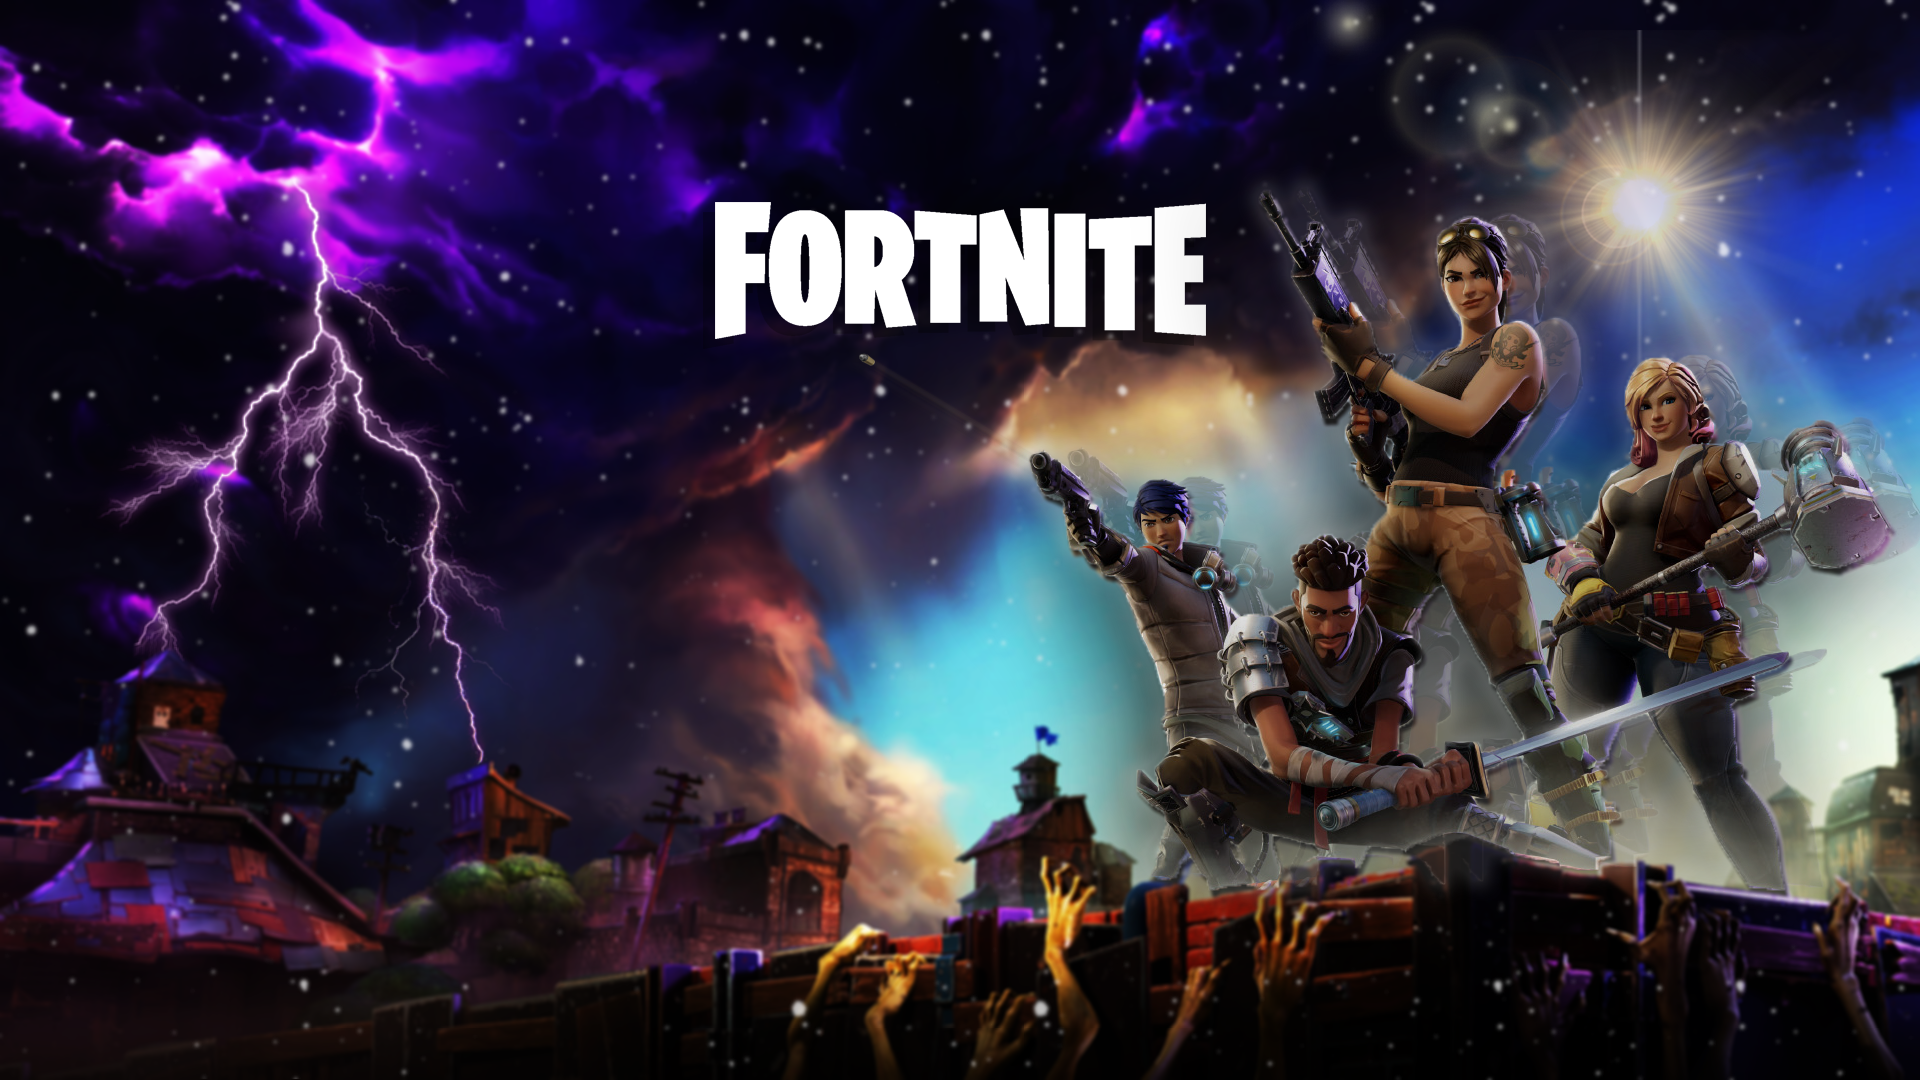 1920x1080 fortnite wallpaper free download Background